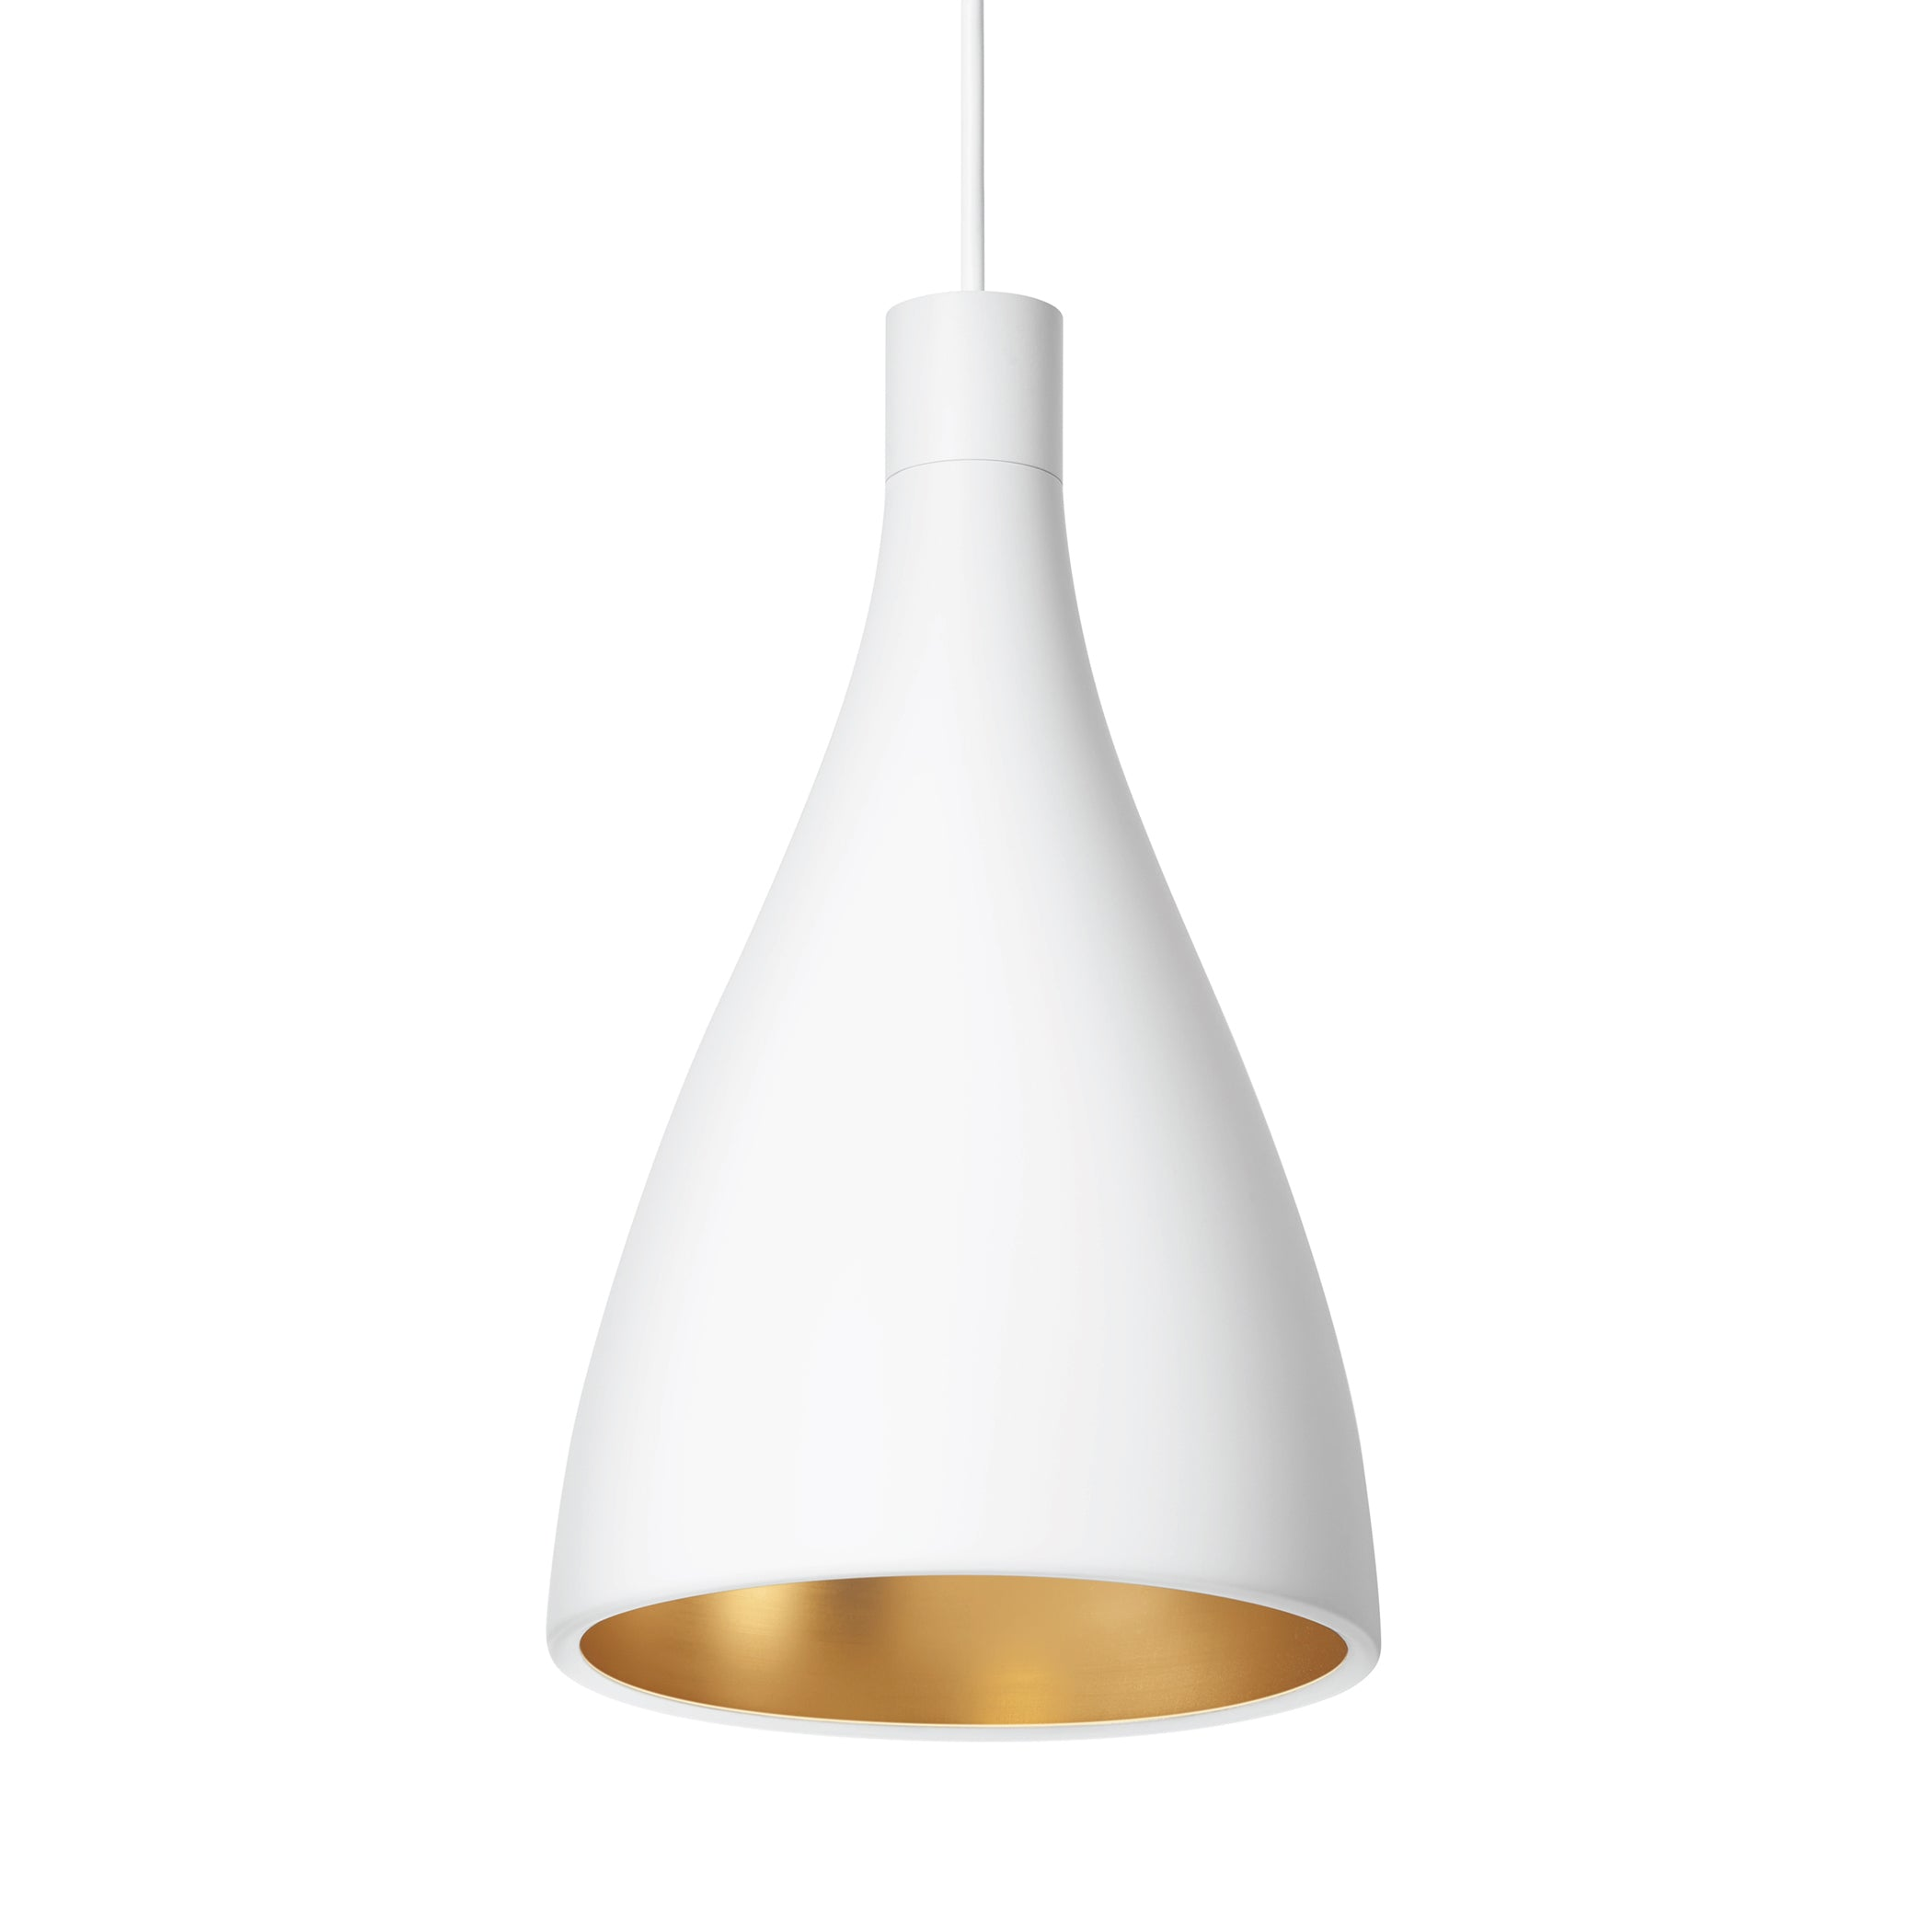 Swell Single Indoor/Outdoor Pendant Light: Narrow + White + Brass